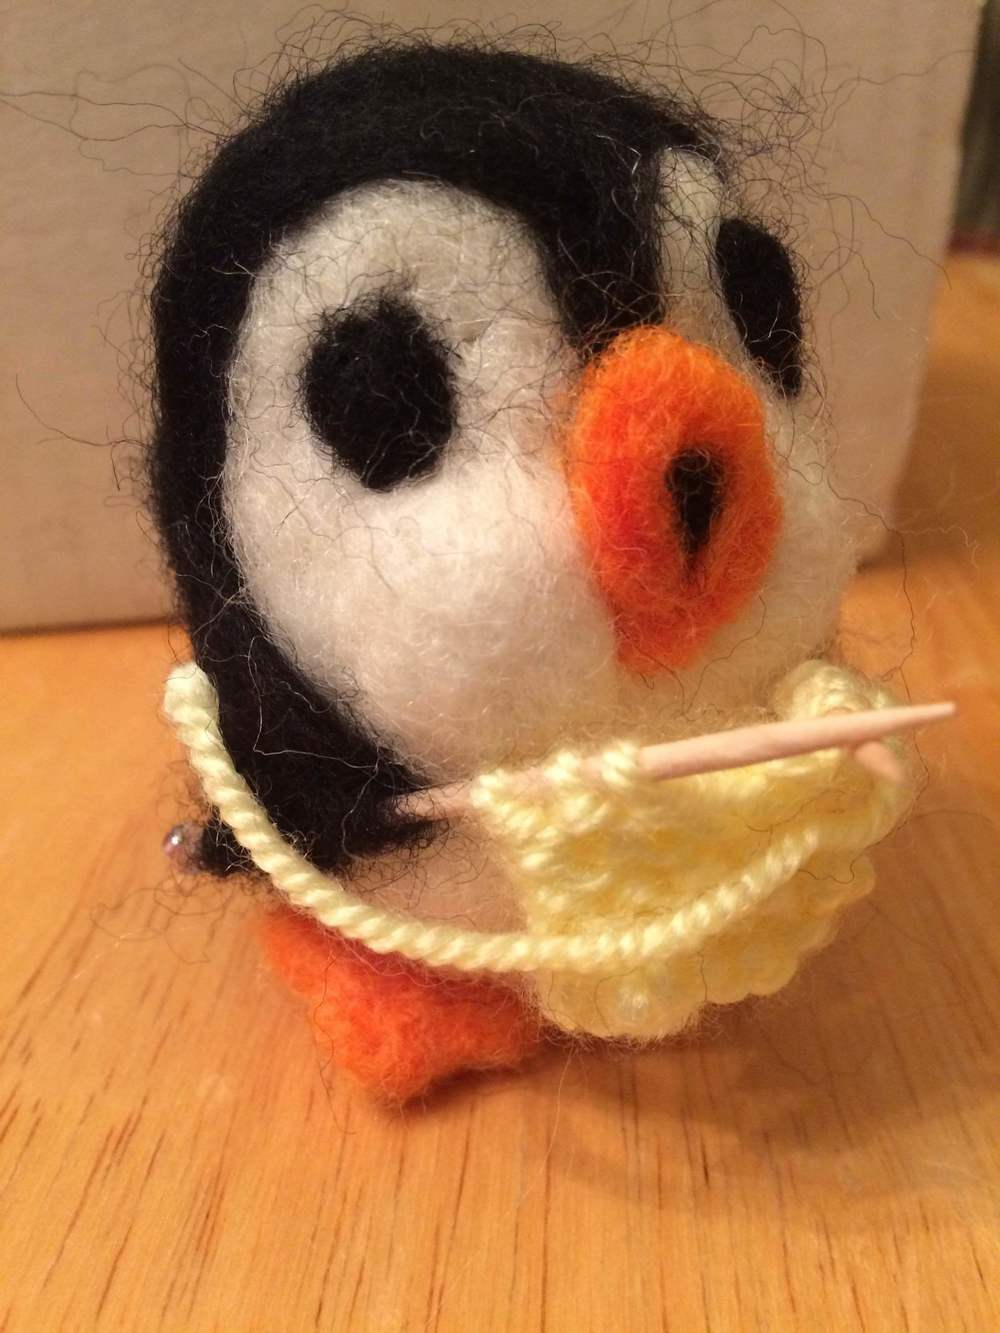 Pamela, Patti, Peter, Persephone, Paula, Paolo?  Start thinking of names for your penguin from the Poke a Critter class with Peg.